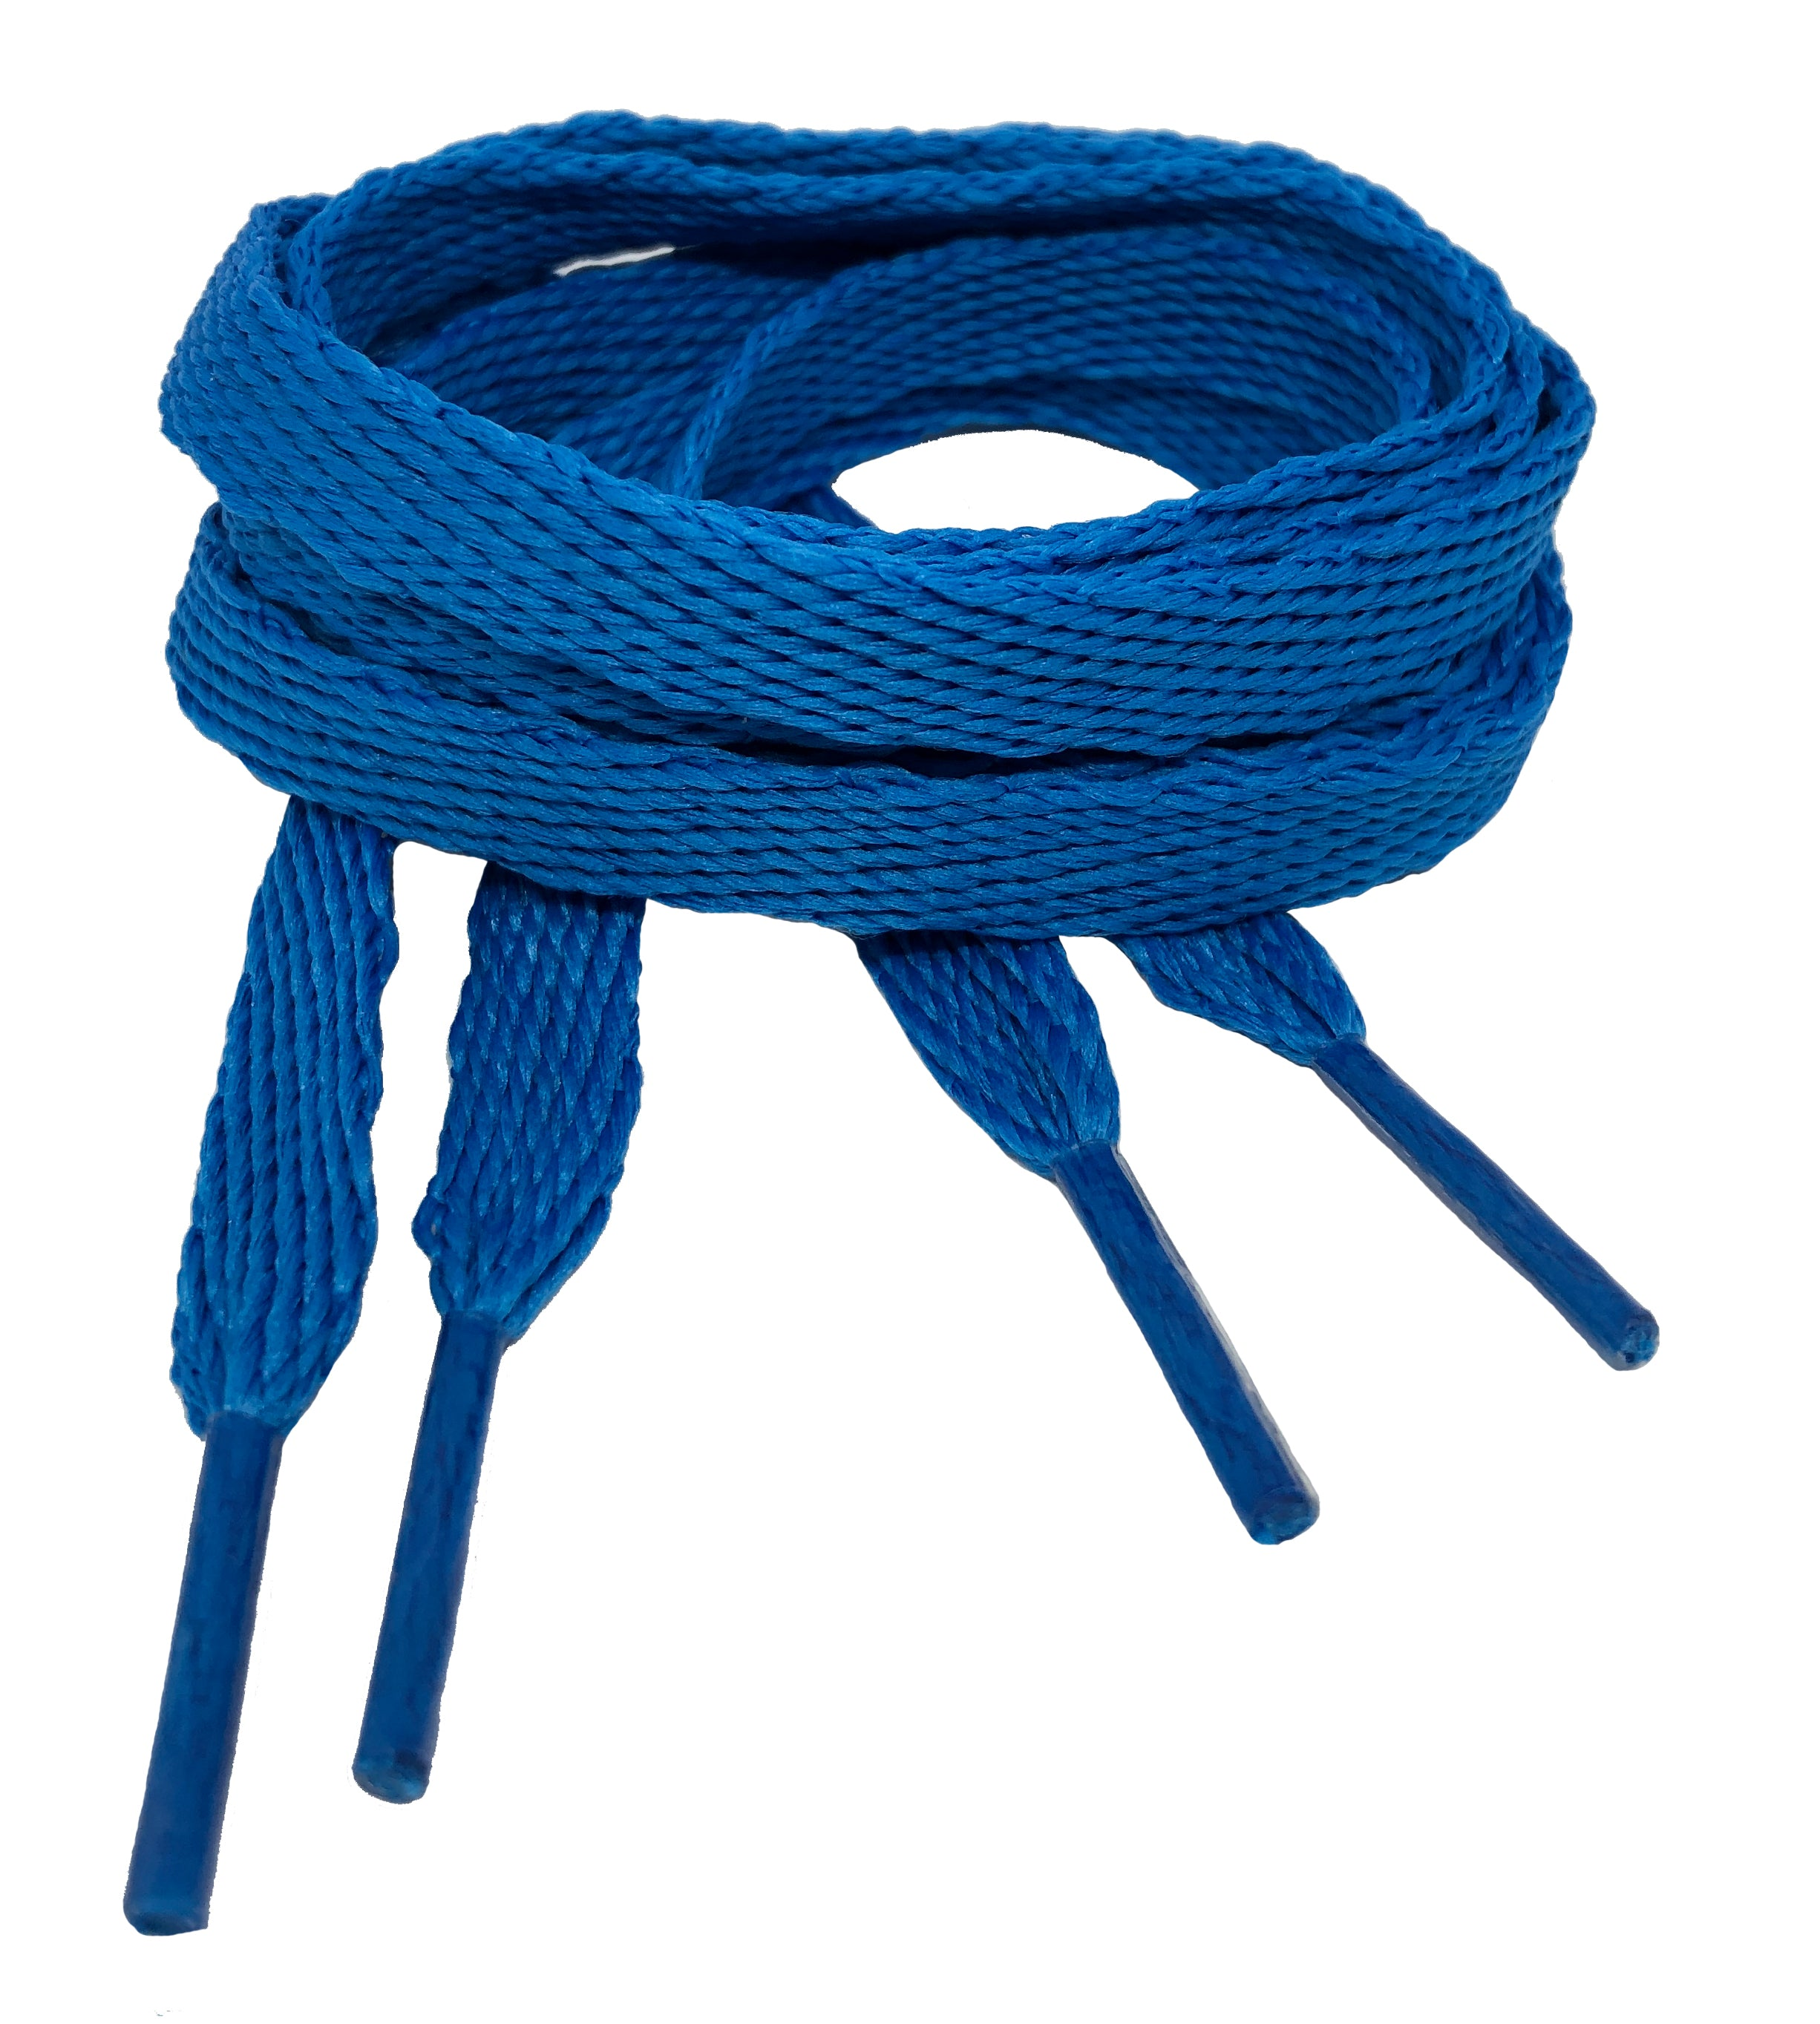 Flat Electric Blue Shoelaces - 10mm wide